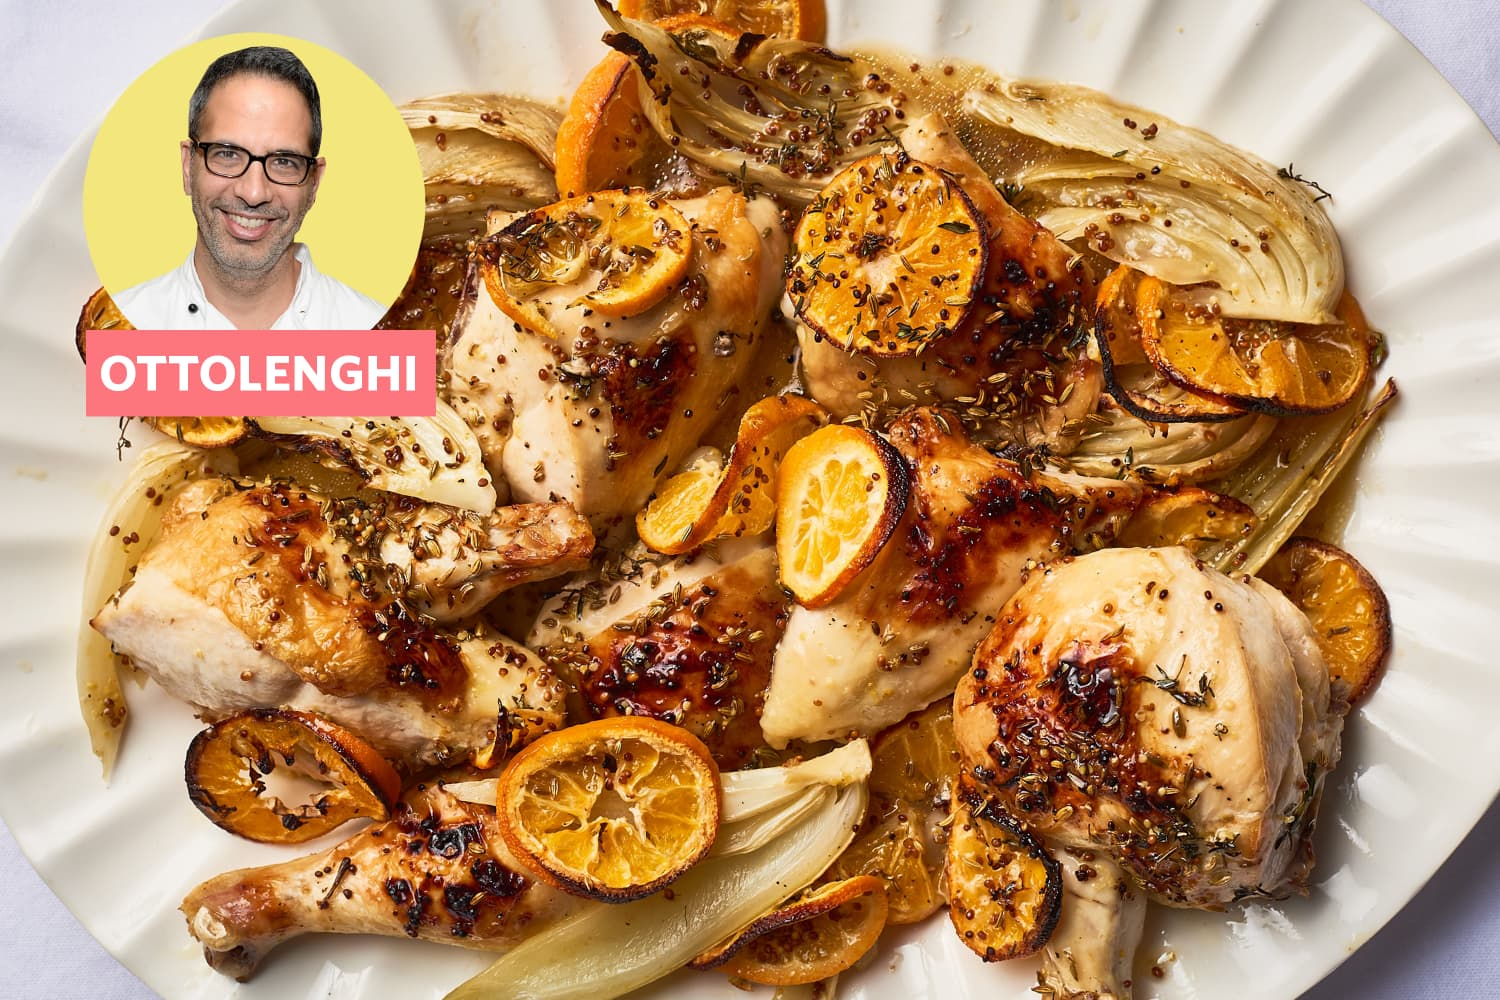 This Glorious Ottolenghi Chicken Is Secretly the Easiest Sheet Pan Meal (But Fancy Enough for Any Occasion)